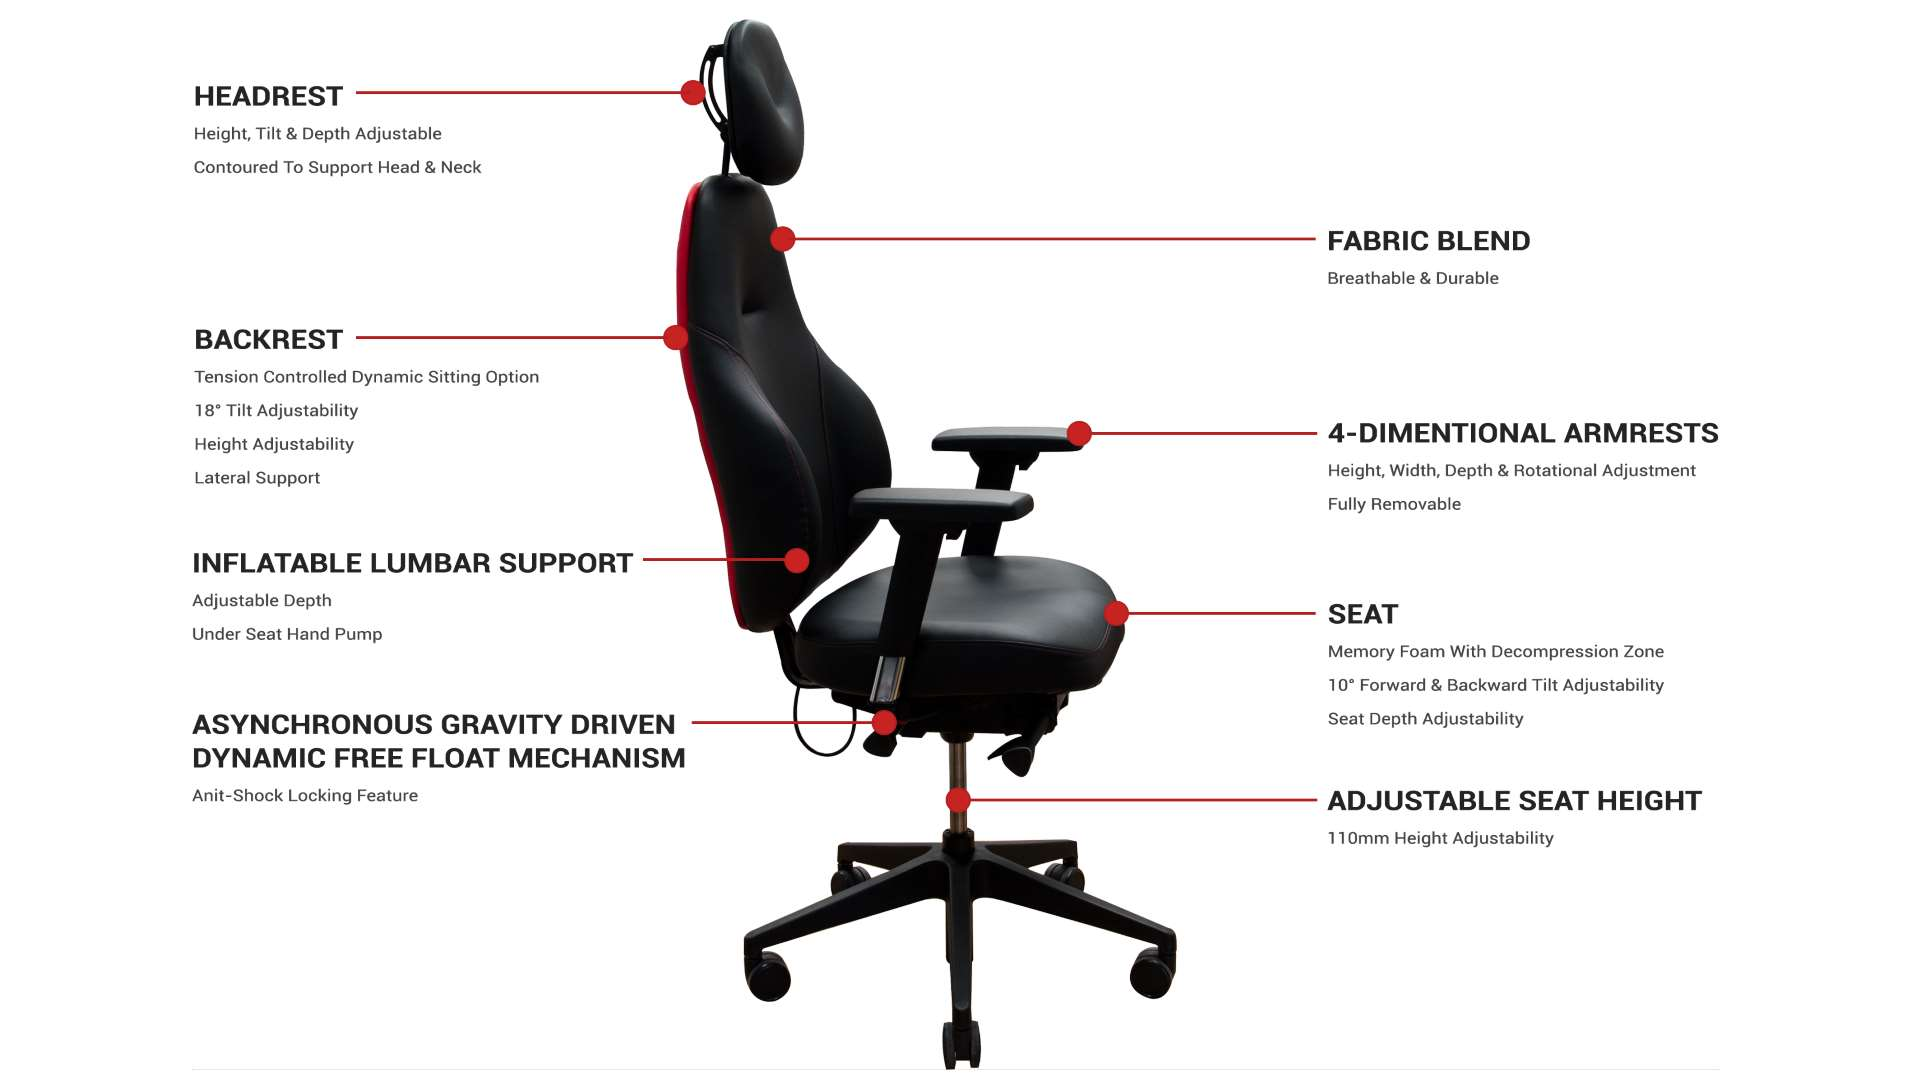 Edge Gx1 Review A Seriously Comfortable Gaming Chair But Not 1 000 Worth Of Comfortable